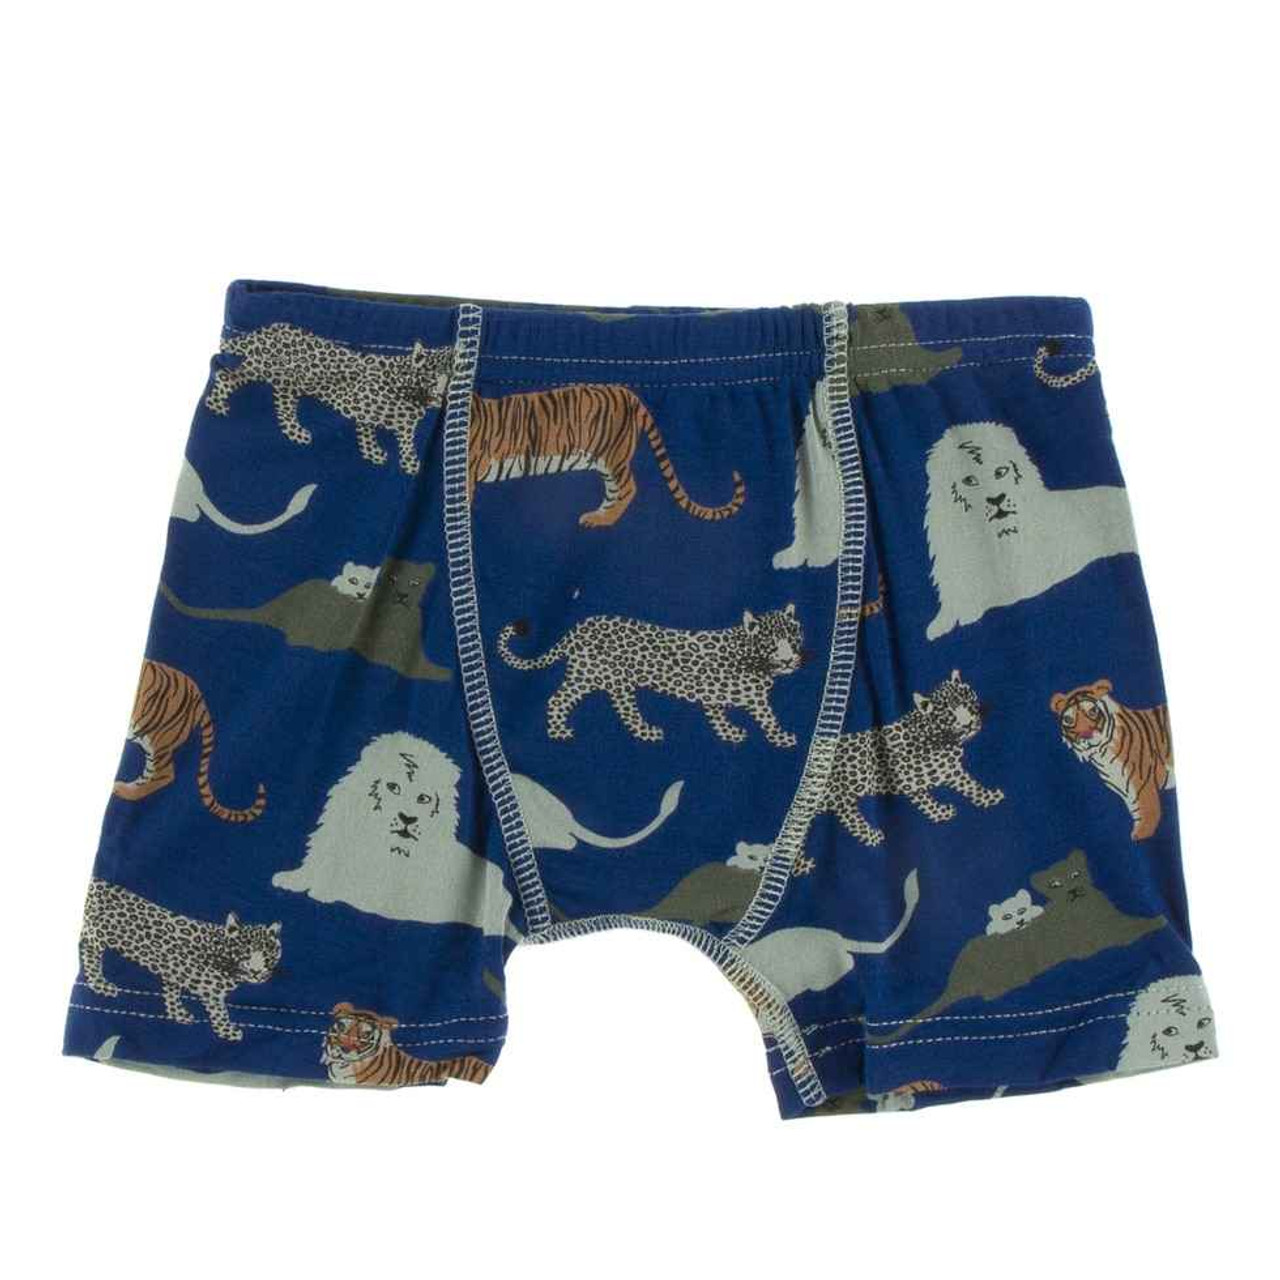 KicKee Pants Boys Boxer Brief Underwear for All Day Comfort